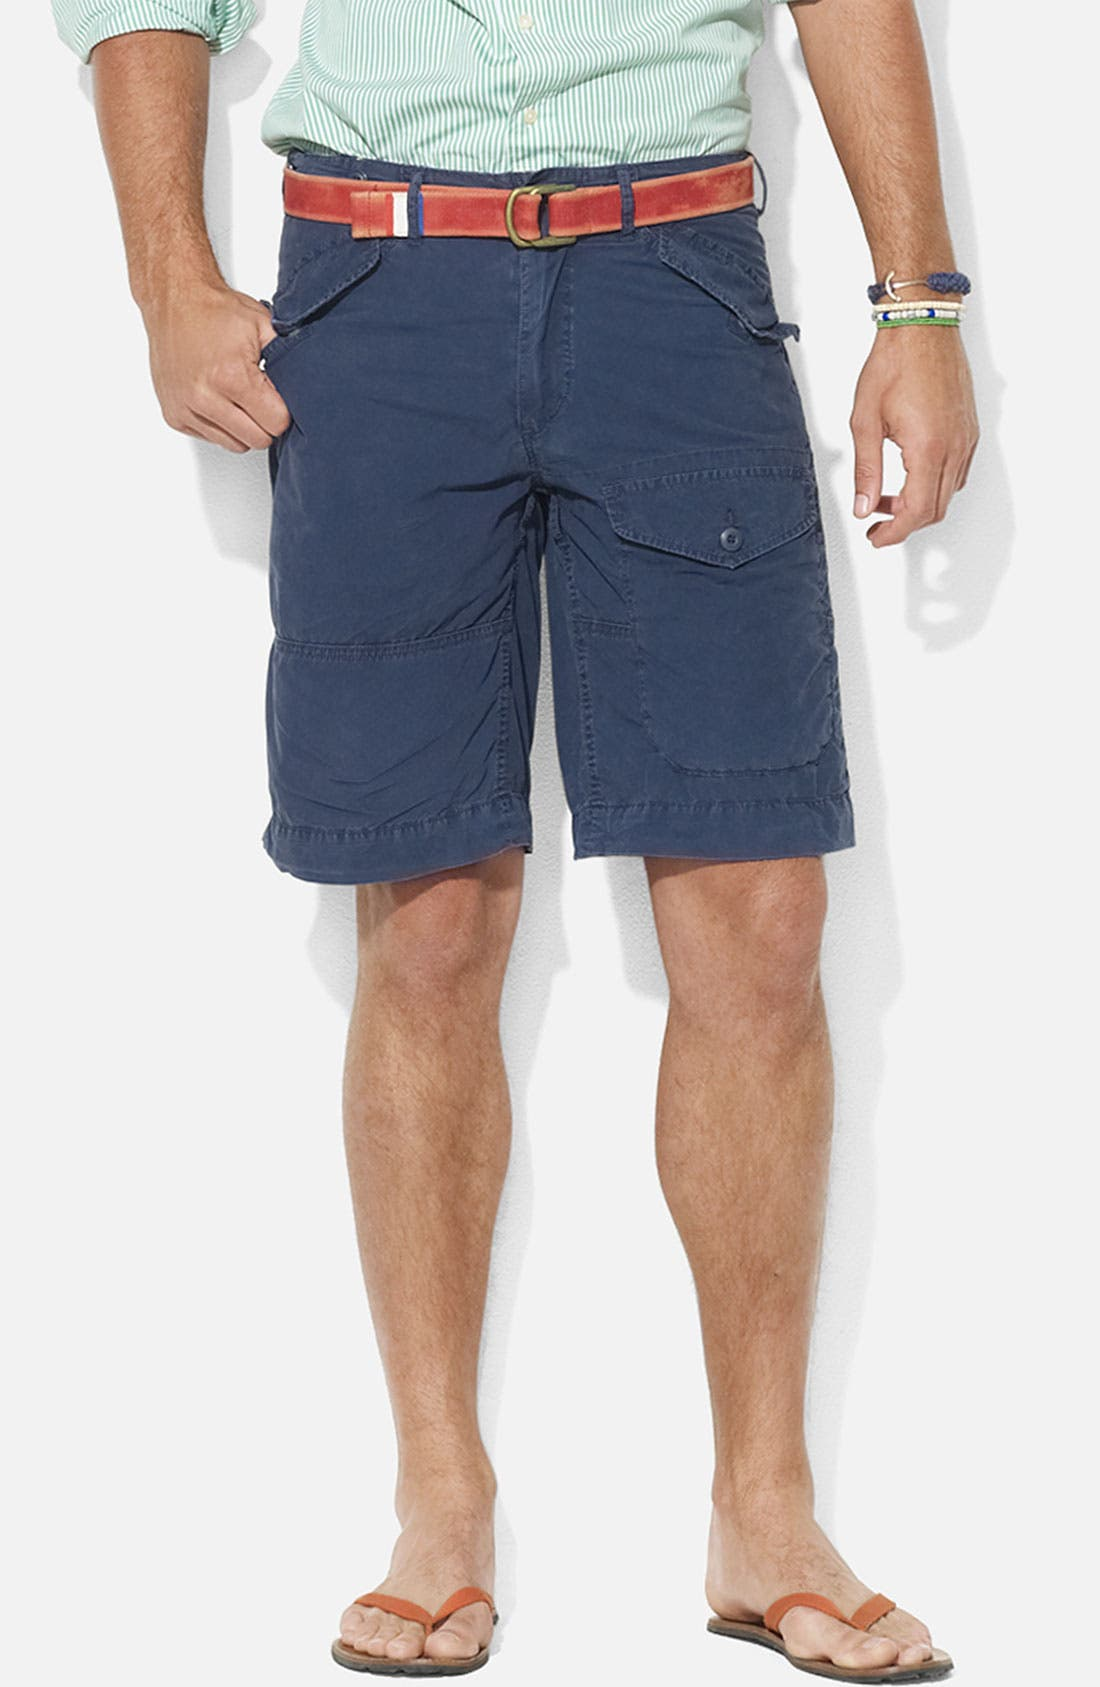 Alternate Image 1 Selected - Polo Ralph Lauren 'Authentic Observer' Flat Front Shorts